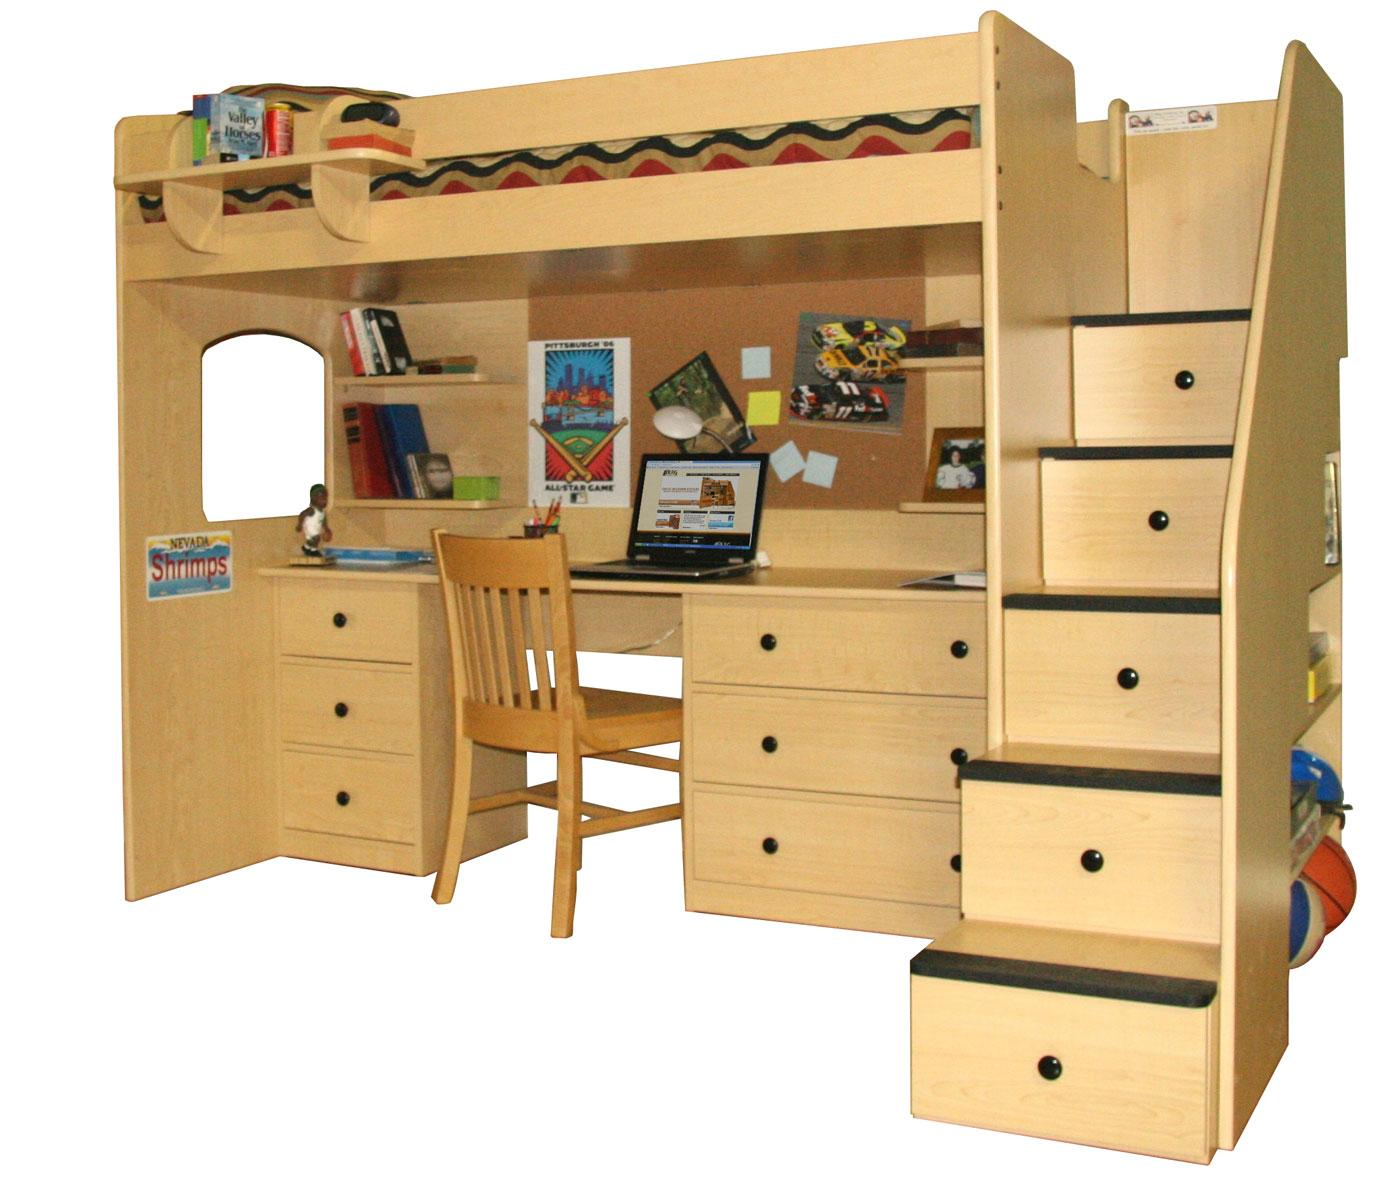 bunk bed plans free bed plans diy blueprints. Black Bedroom Furniture Sets. Home Design Ideas